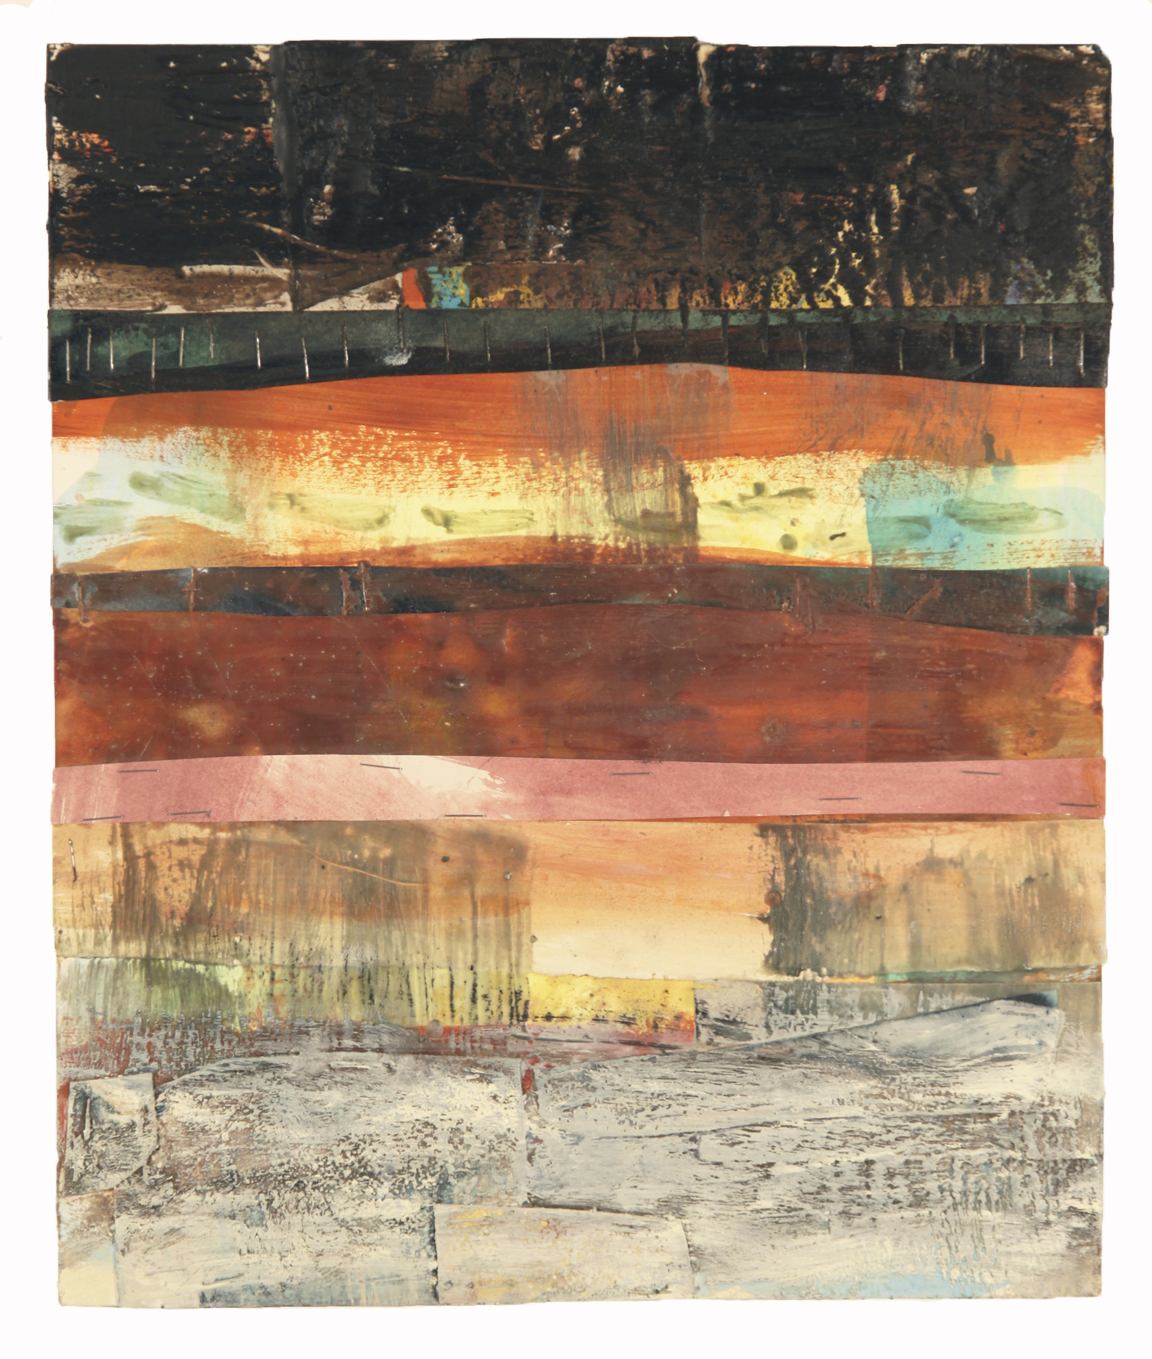 CINEMATIC VIEW, 2015  Ecaustics and mixed media on paper  15 x 12 1/2 inches